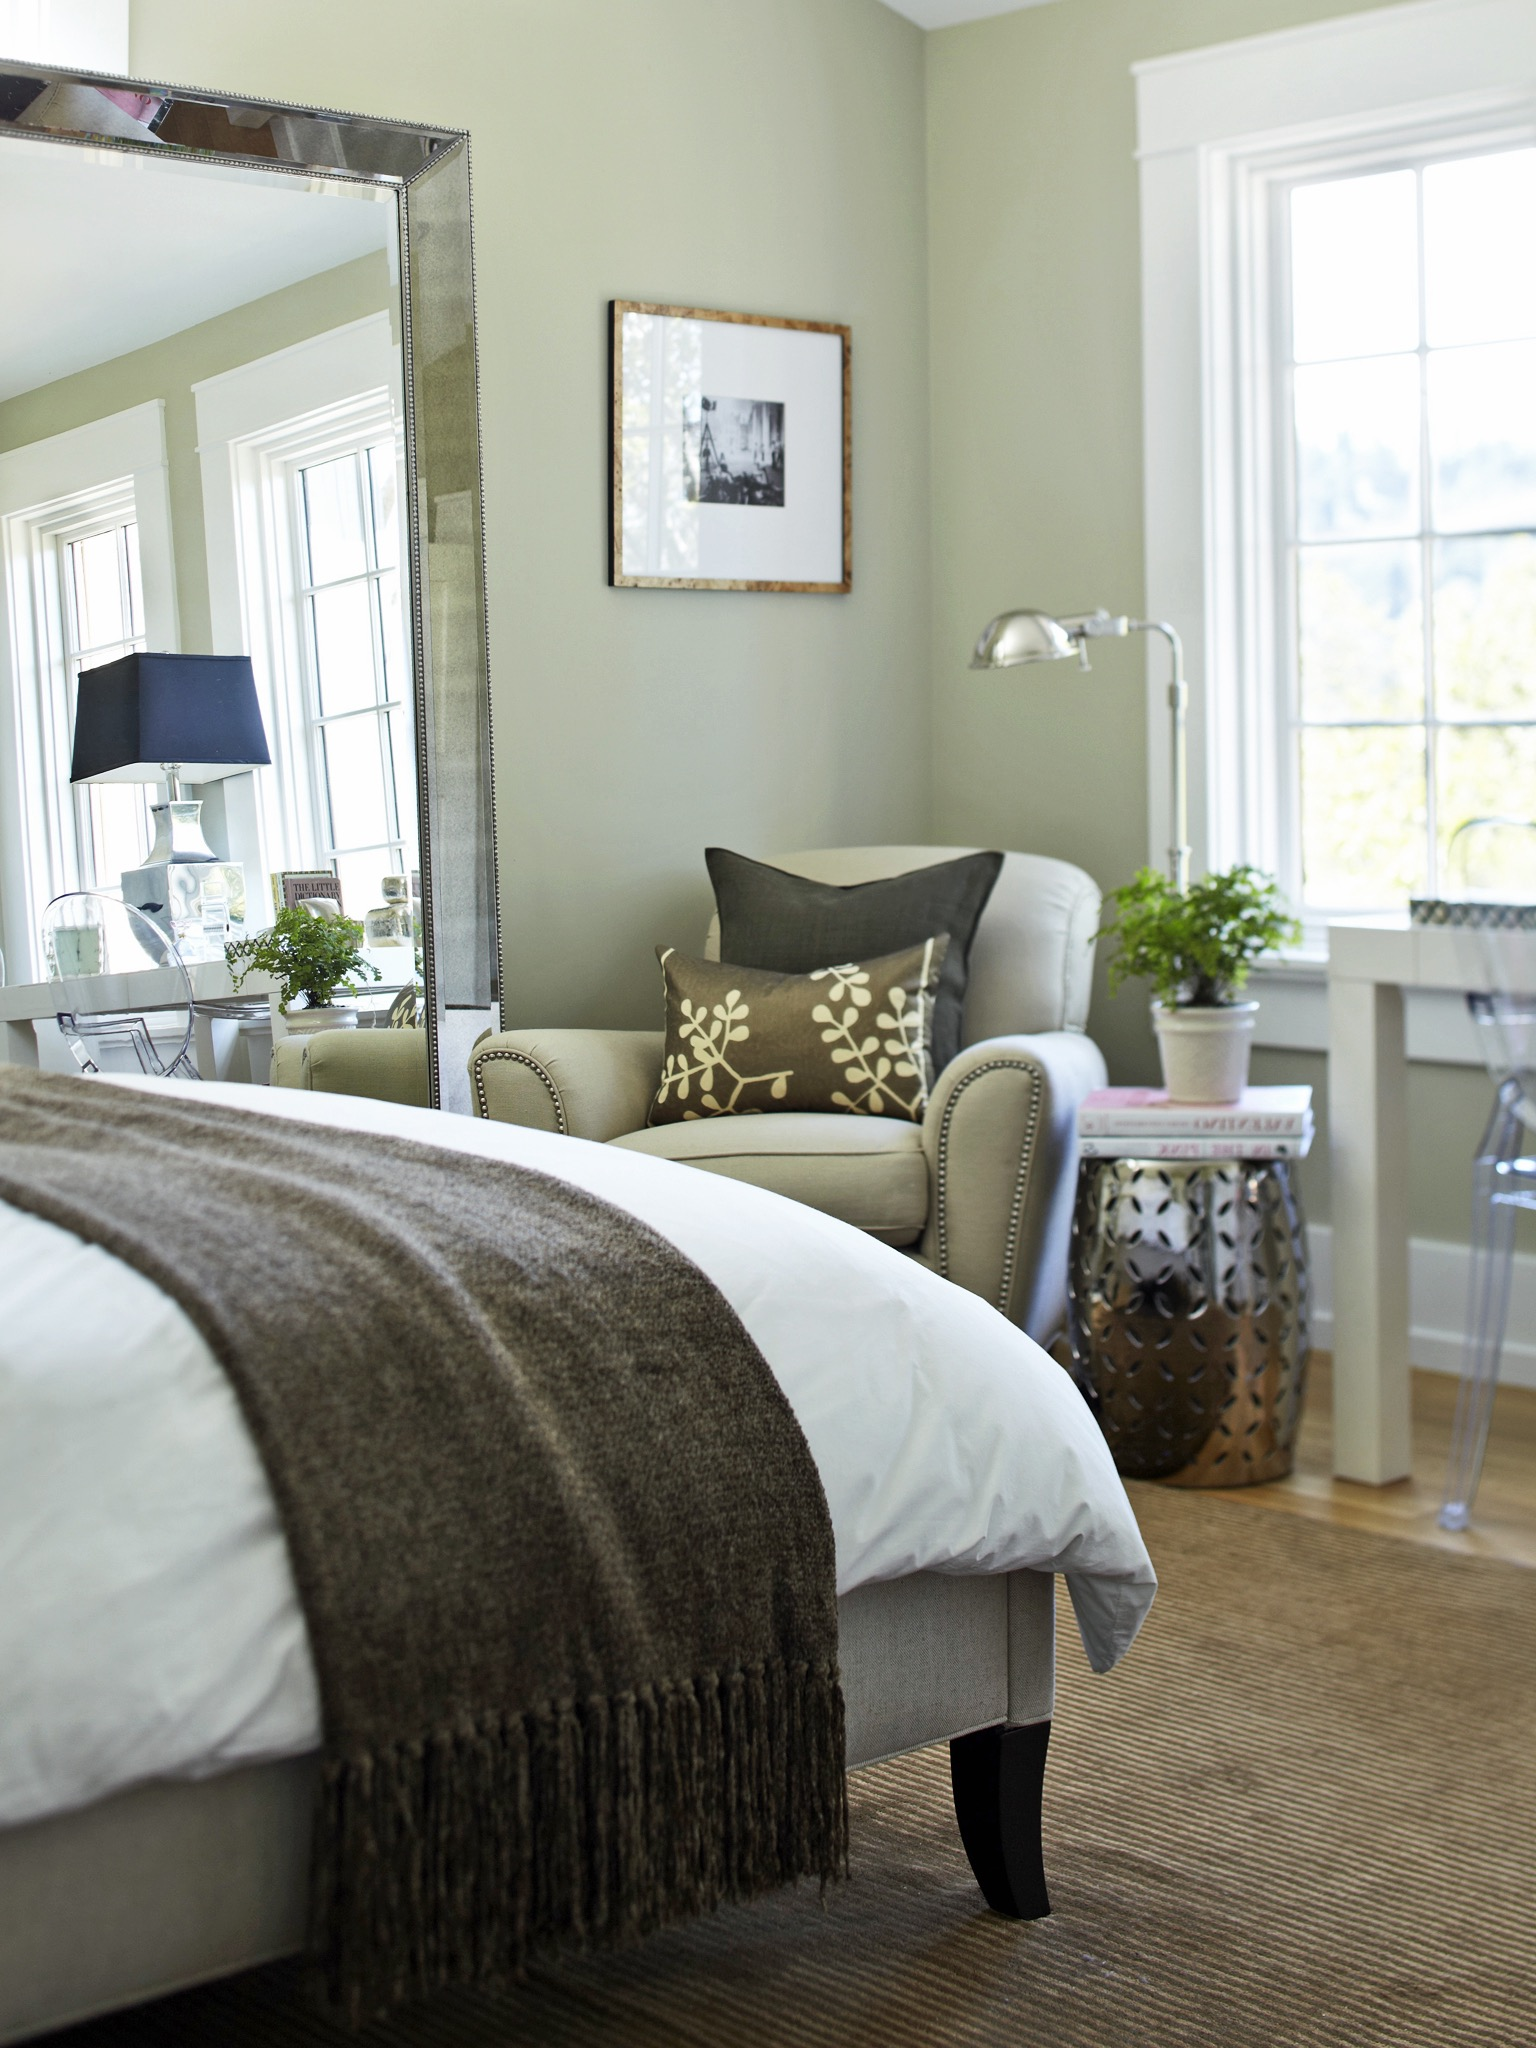 20 Bedroom Mirror Decor And Placement Ideas